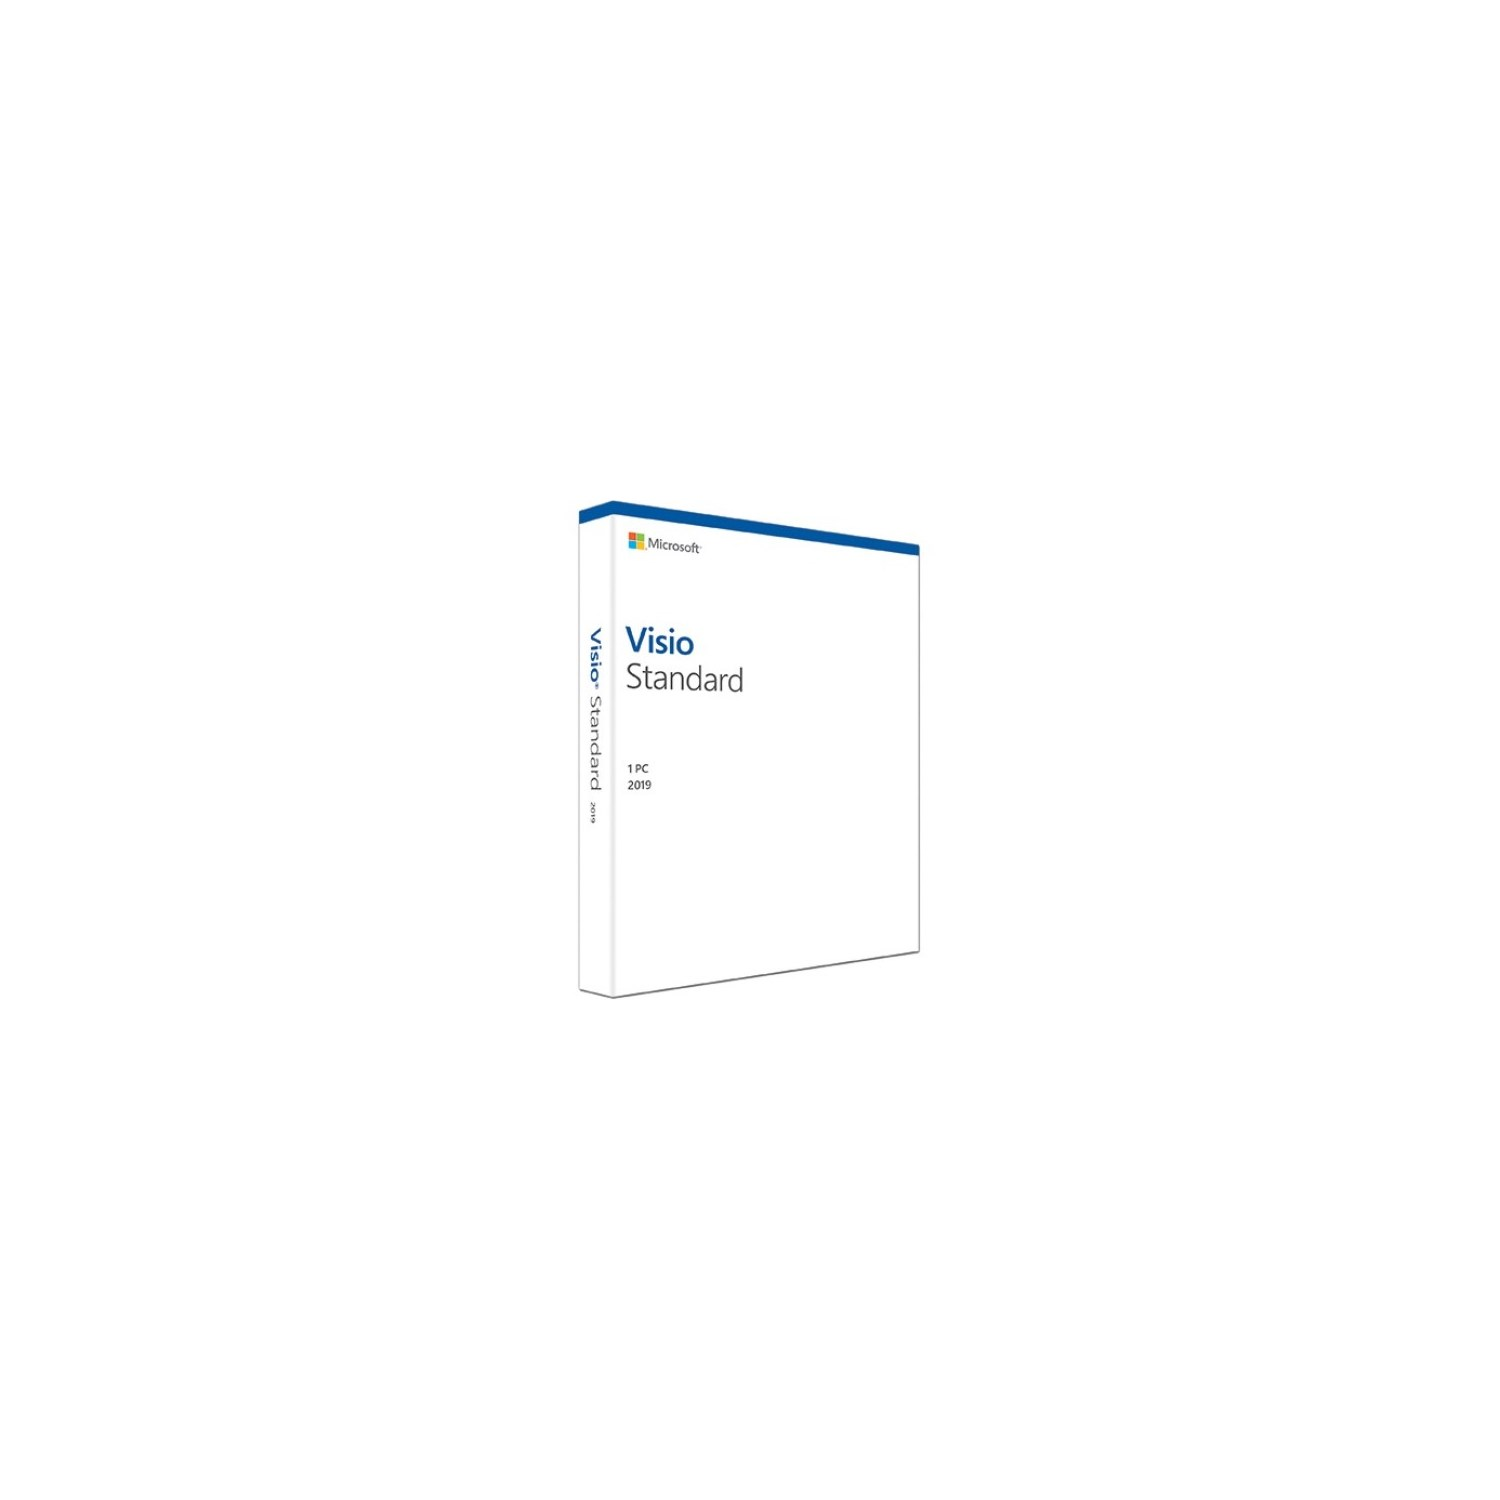 Microsoft Visio 2019 Standard for Windows 10 - Box Pack - 1 PC - Medialess